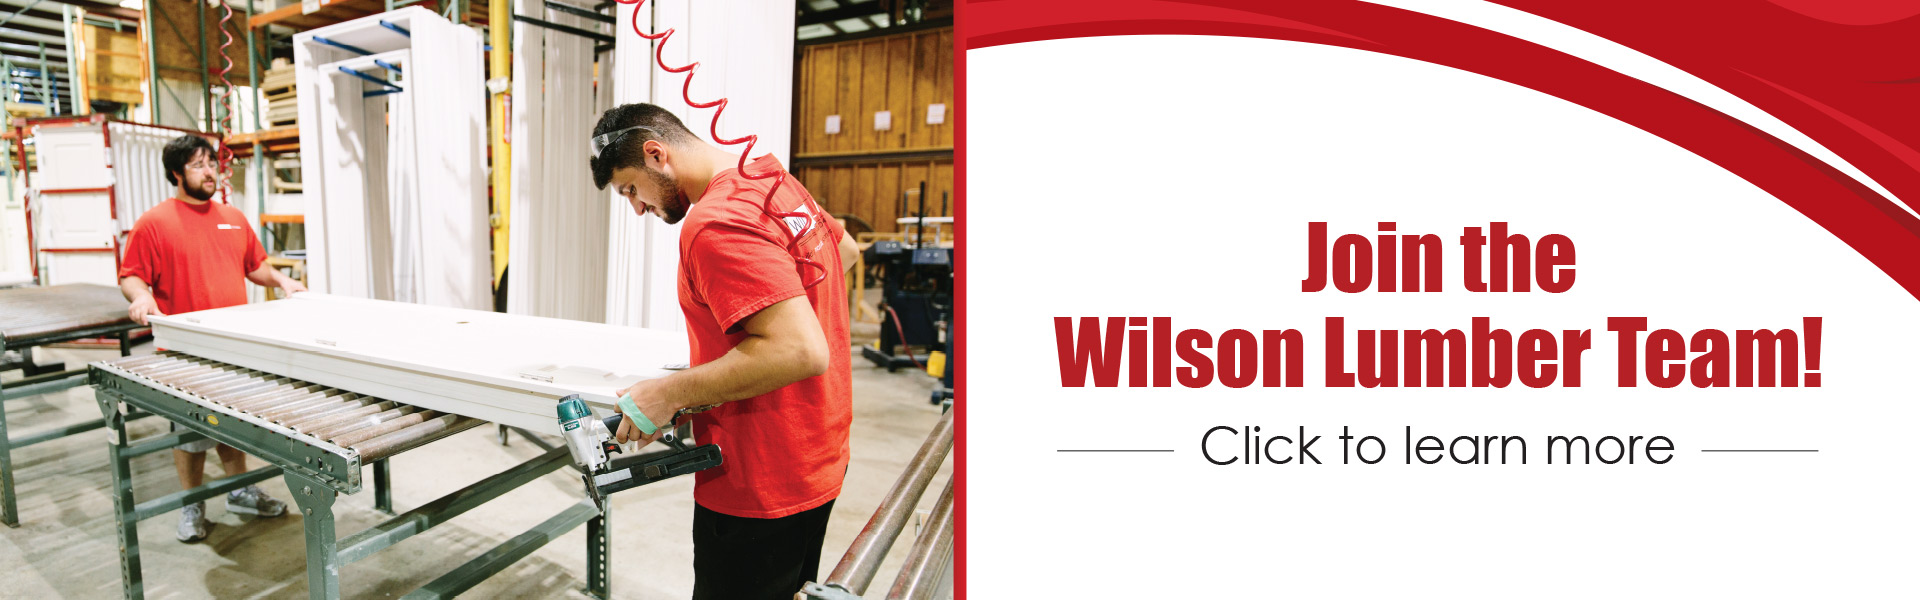 Join the Wilson Lumber Team!